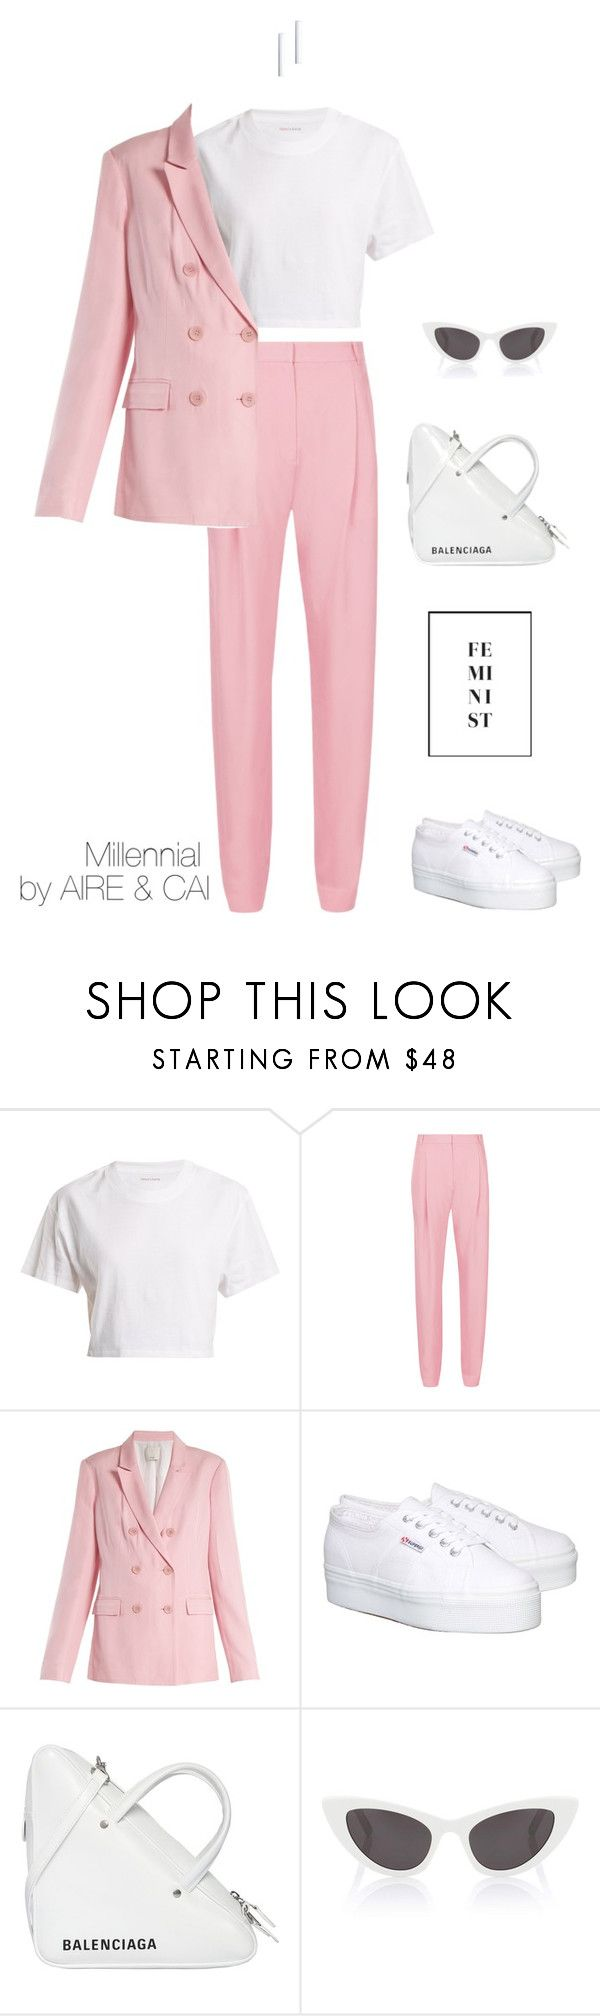 """""""Millennial"""" by aireandcaimail on Polyvore featuring Hanes, TIBI, Superga, Balenciaga, Yves Saint Laurent and Birks"""